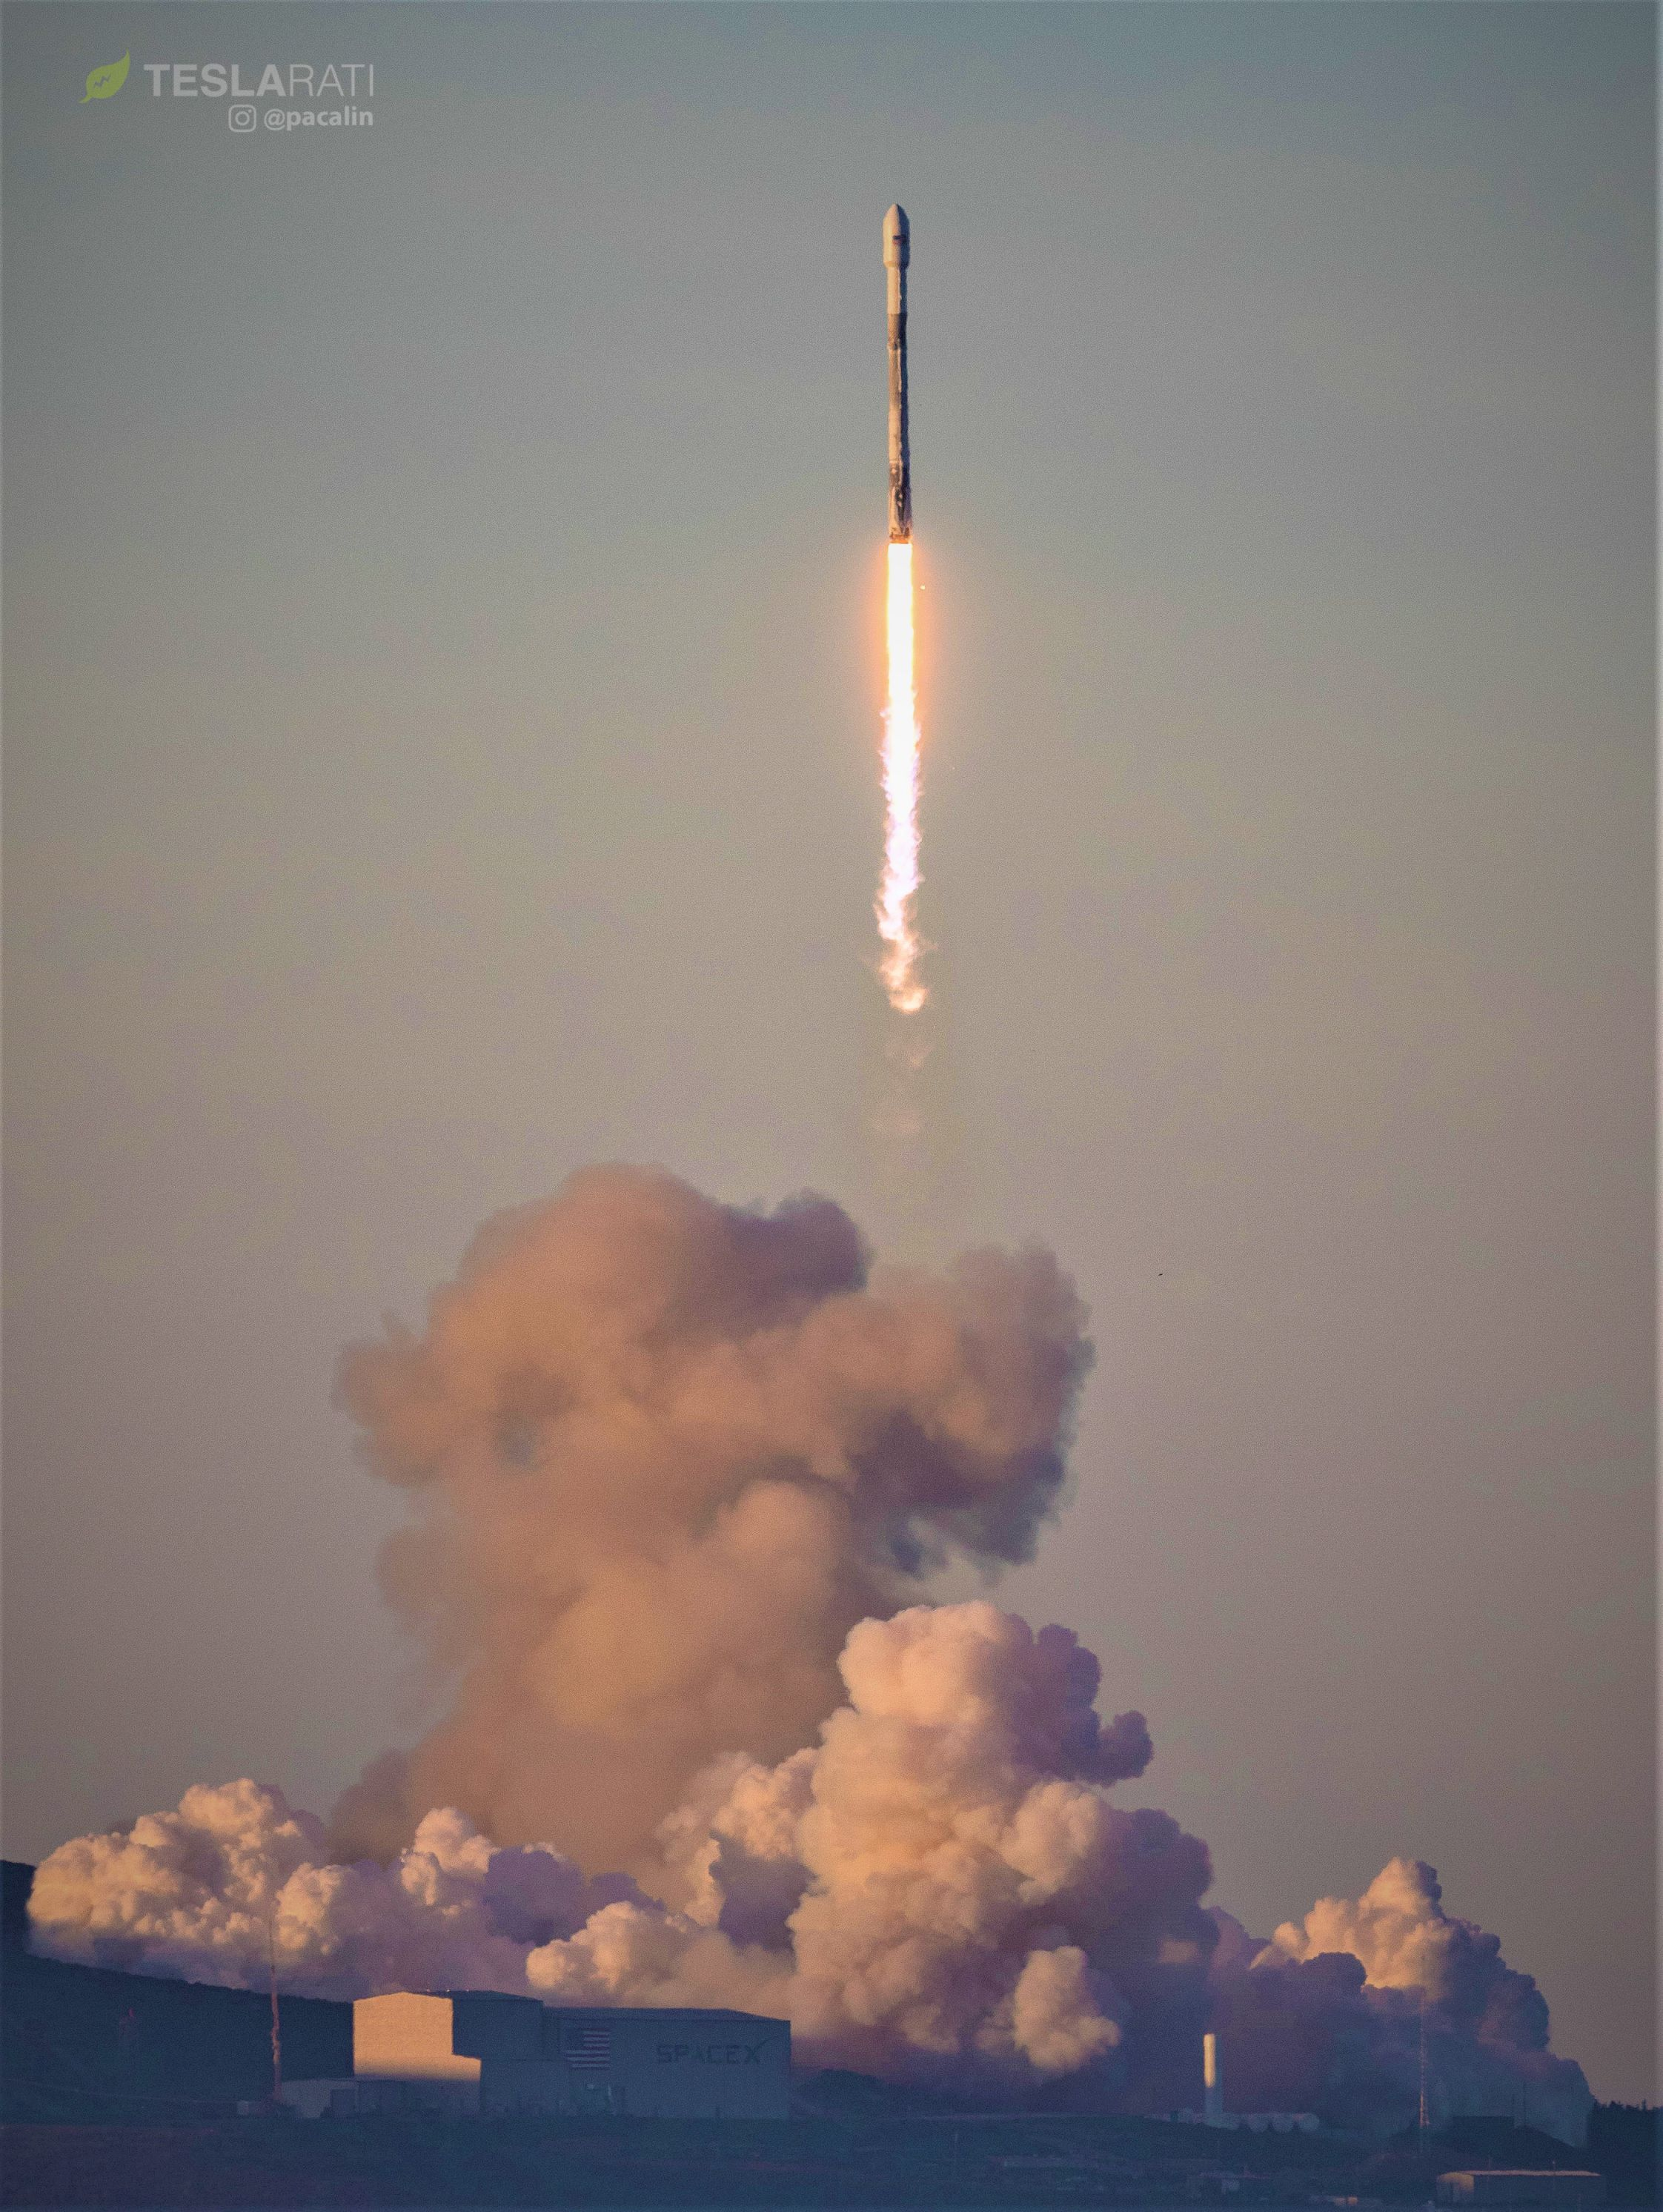 Falcon 9 1041 soars into sunlight (Pauline Acalin)(c)